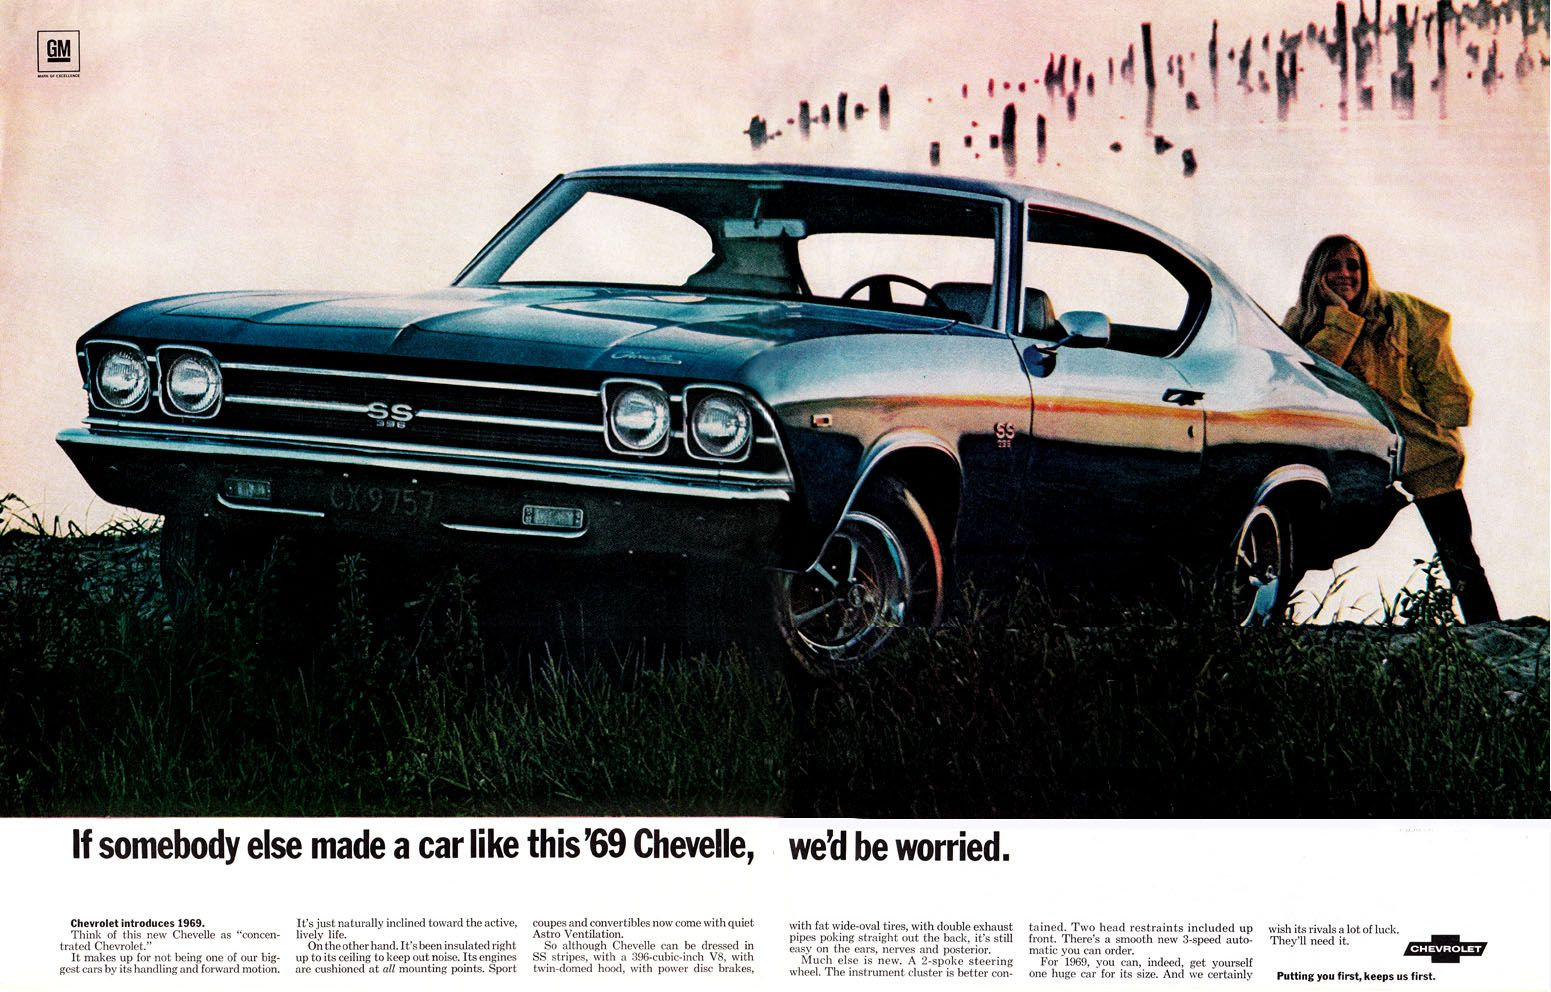 1969 chevelle ss 396 ad if someone else made a car like this chevelle we d be worried